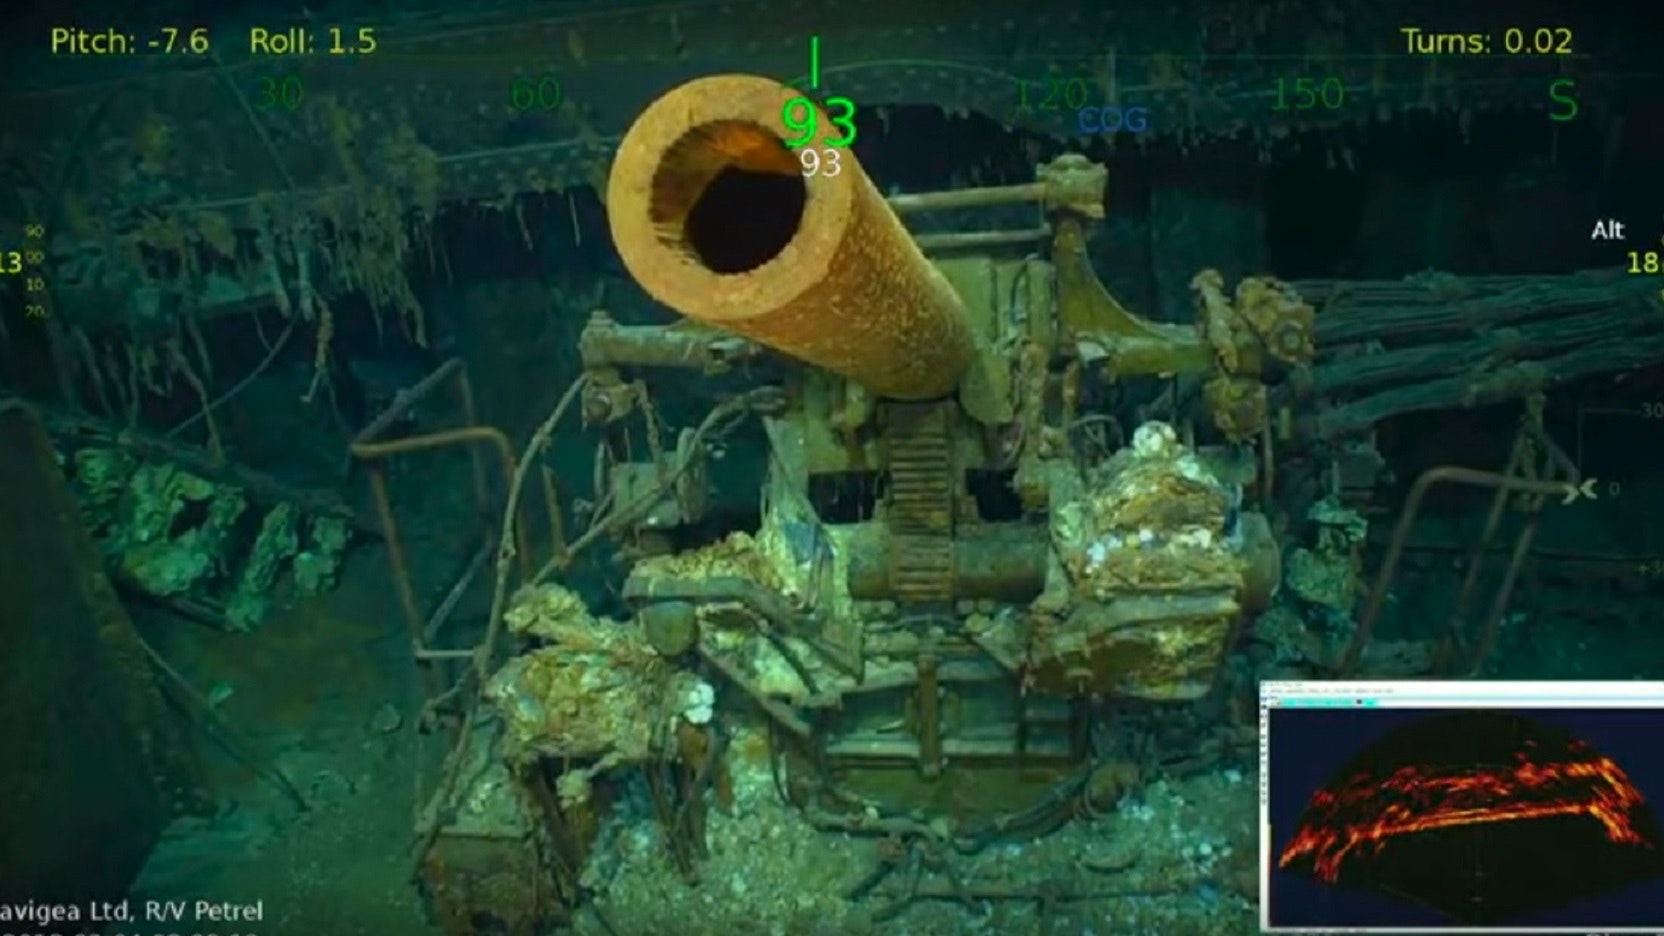 WWII wreckage of aircraft carrier USS Lexington found (photos, video)